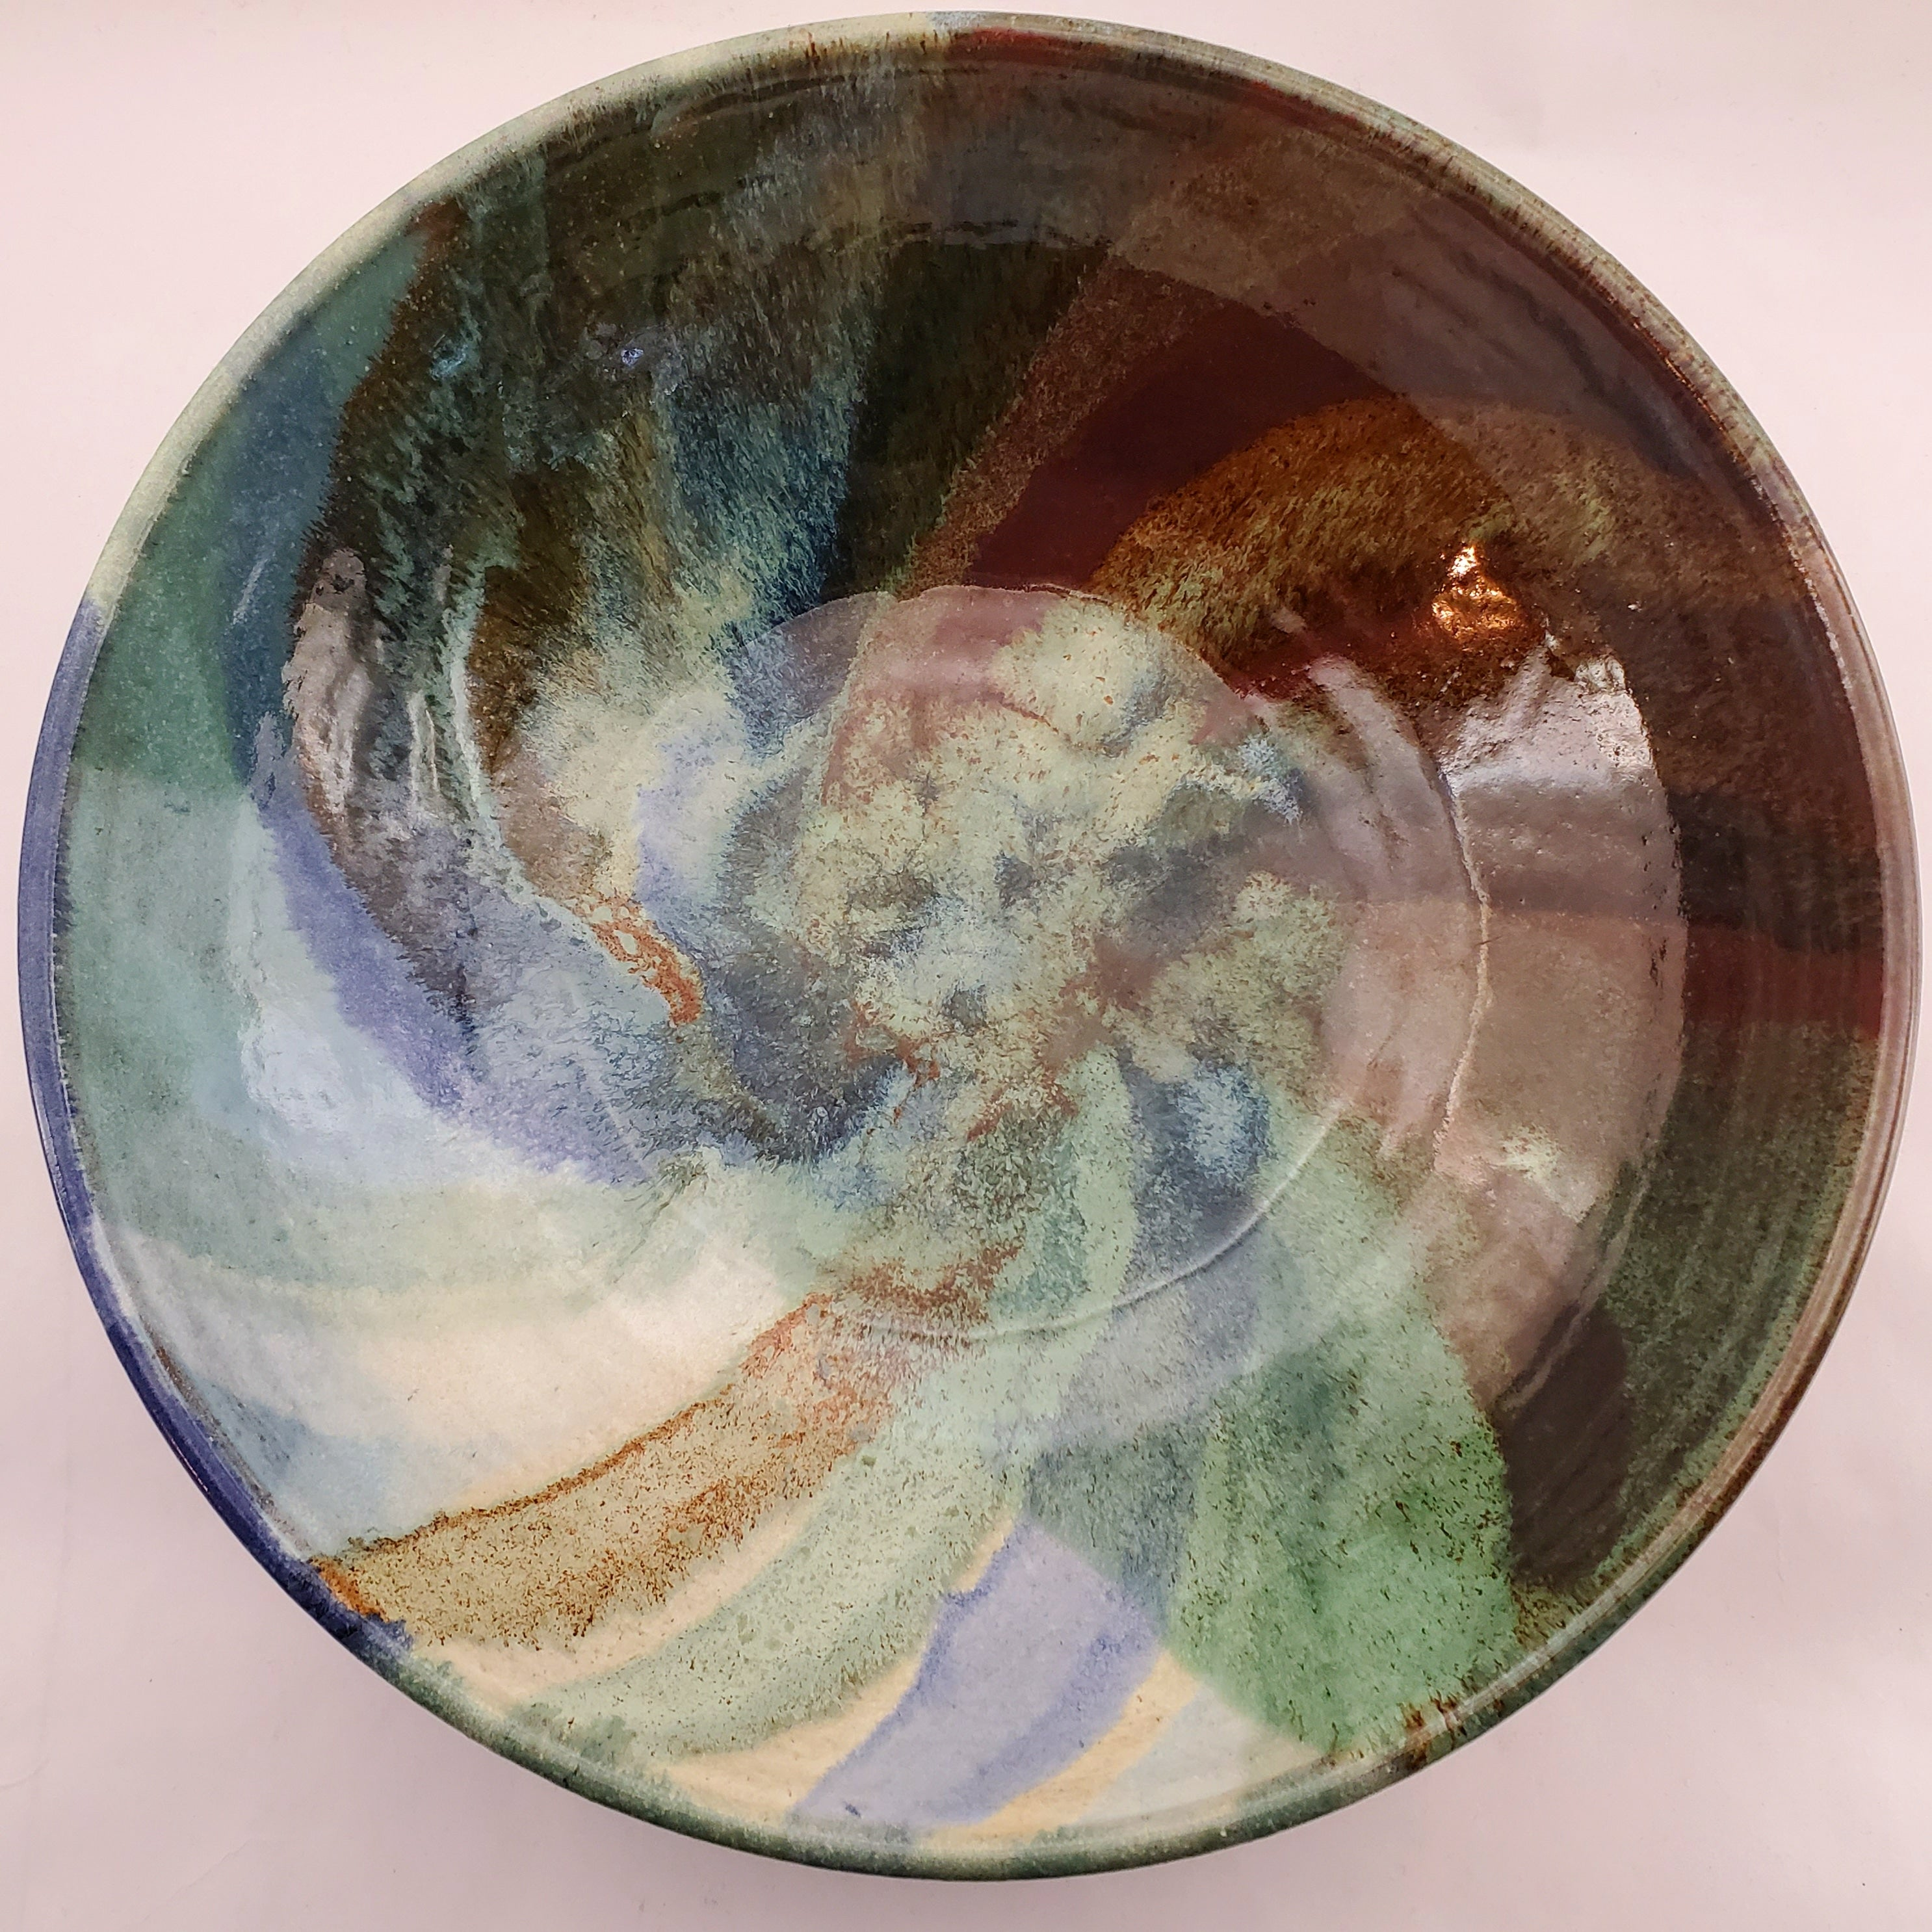 Beautiful, Signature style bowl glazed in blues, greens and browns. Handmade on Vashon Island by Abraham McBride Pottery. Local ceramics artist, Seattle Washington. Small business, Made in the USA.